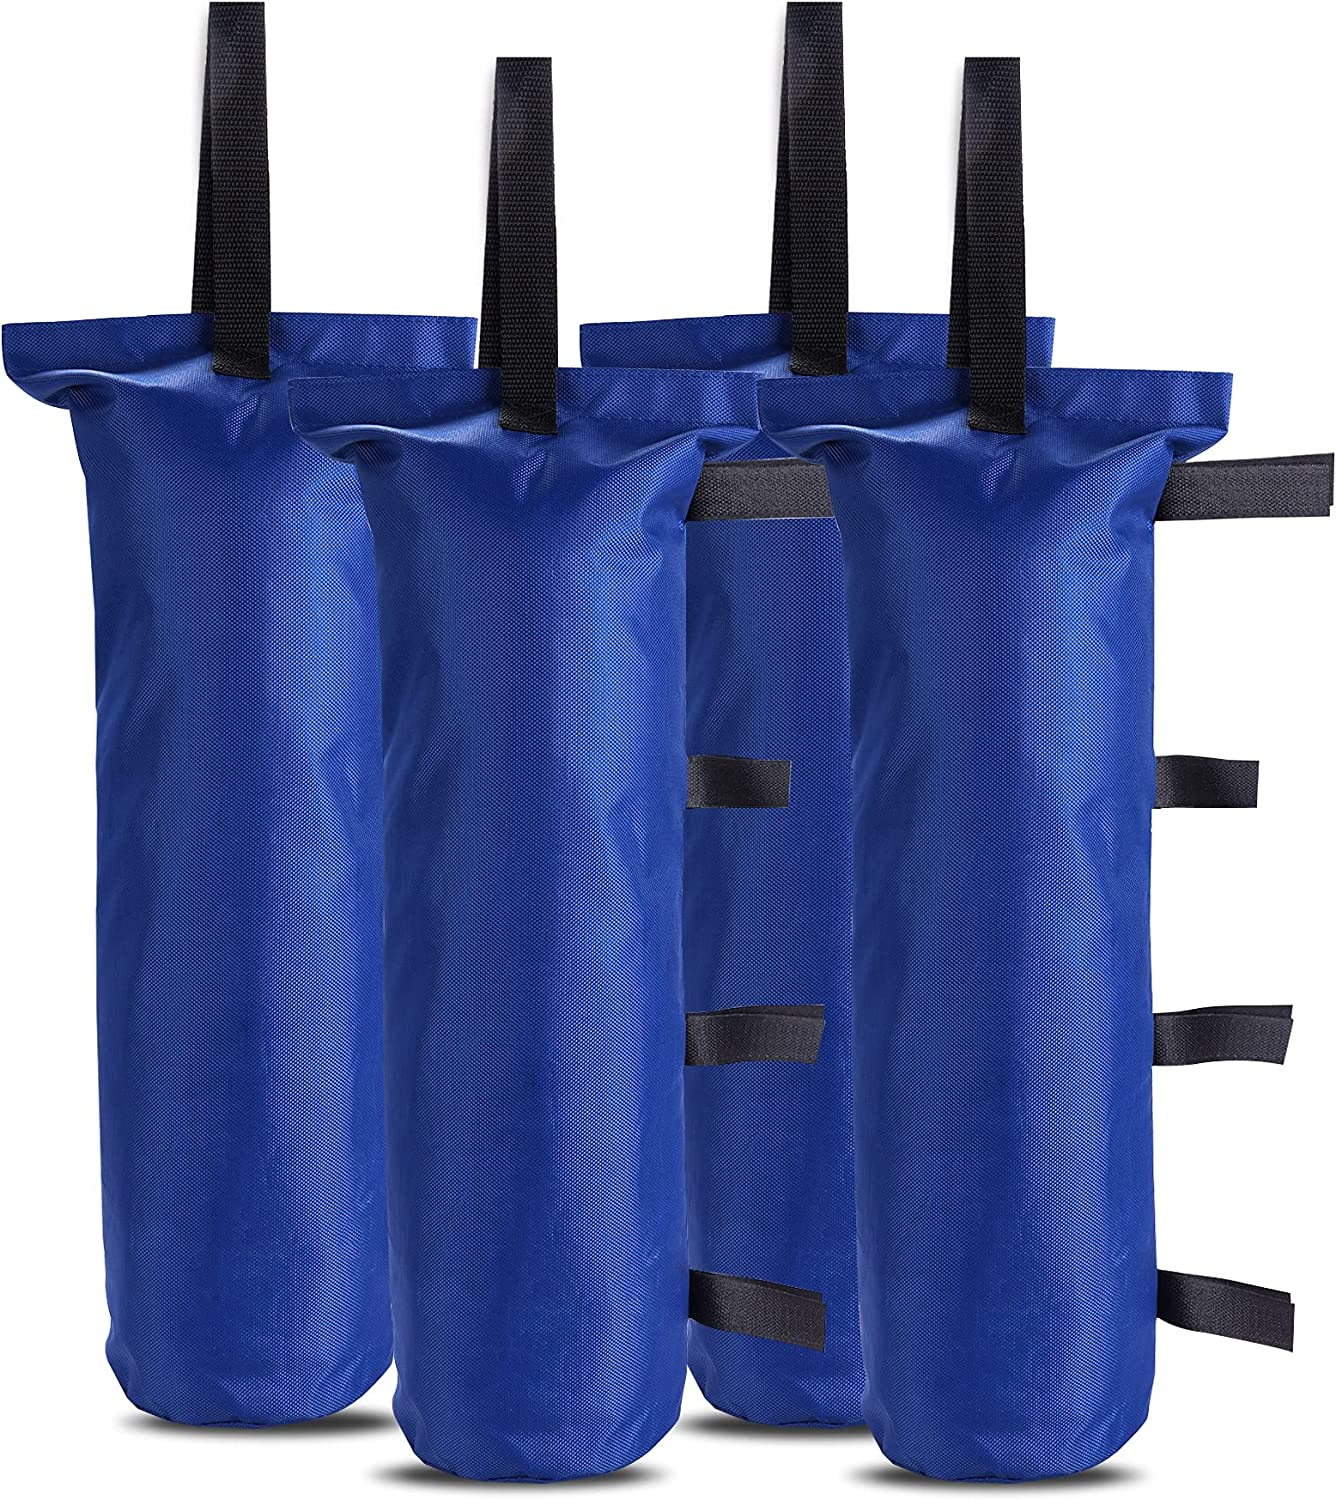 4 Pack 112 LBS Omaha Mall Canopy In a popularity Sandbags Up Pop Bags Outdoor Weight Can